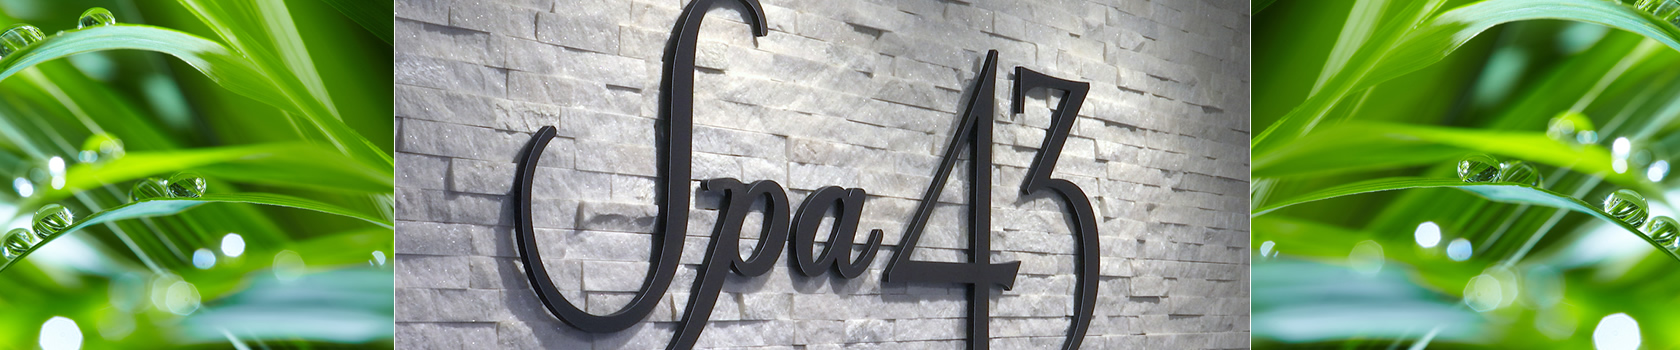 Spa 43 Cosmetic and Laser Center